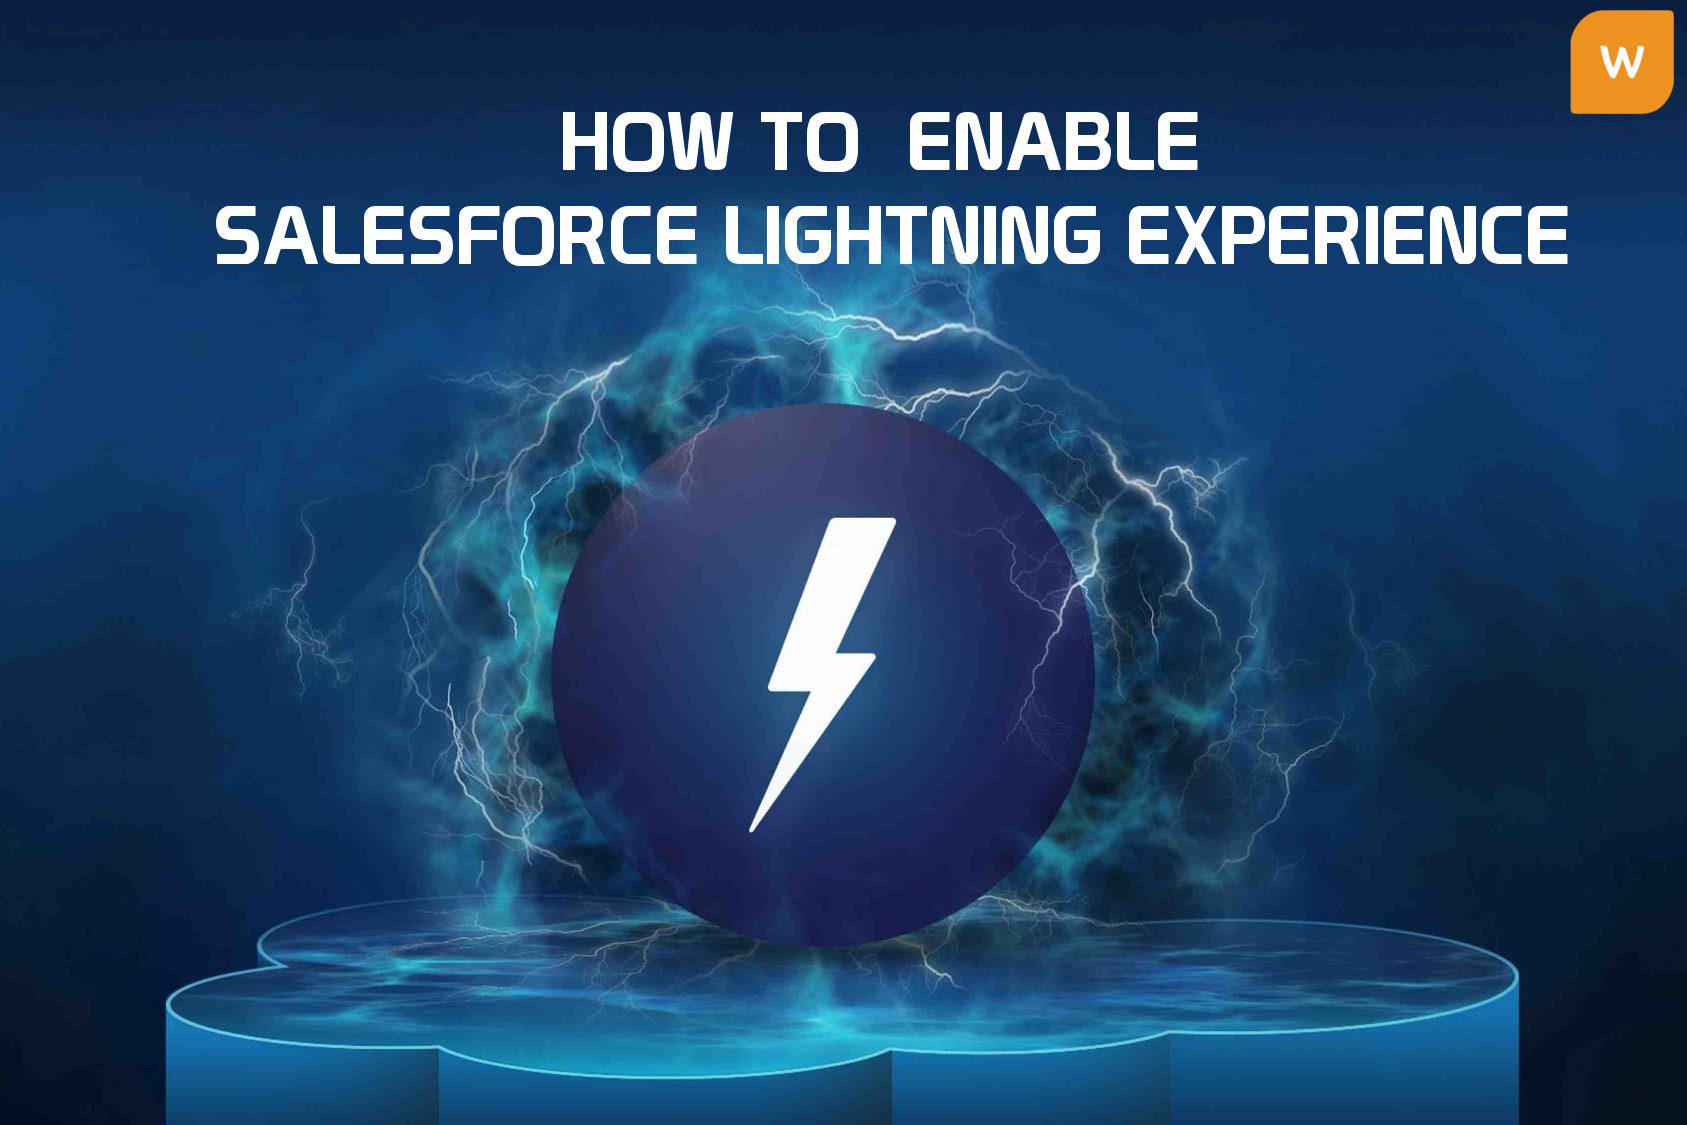 How To Power Up & Enable Salesforce Lightning!